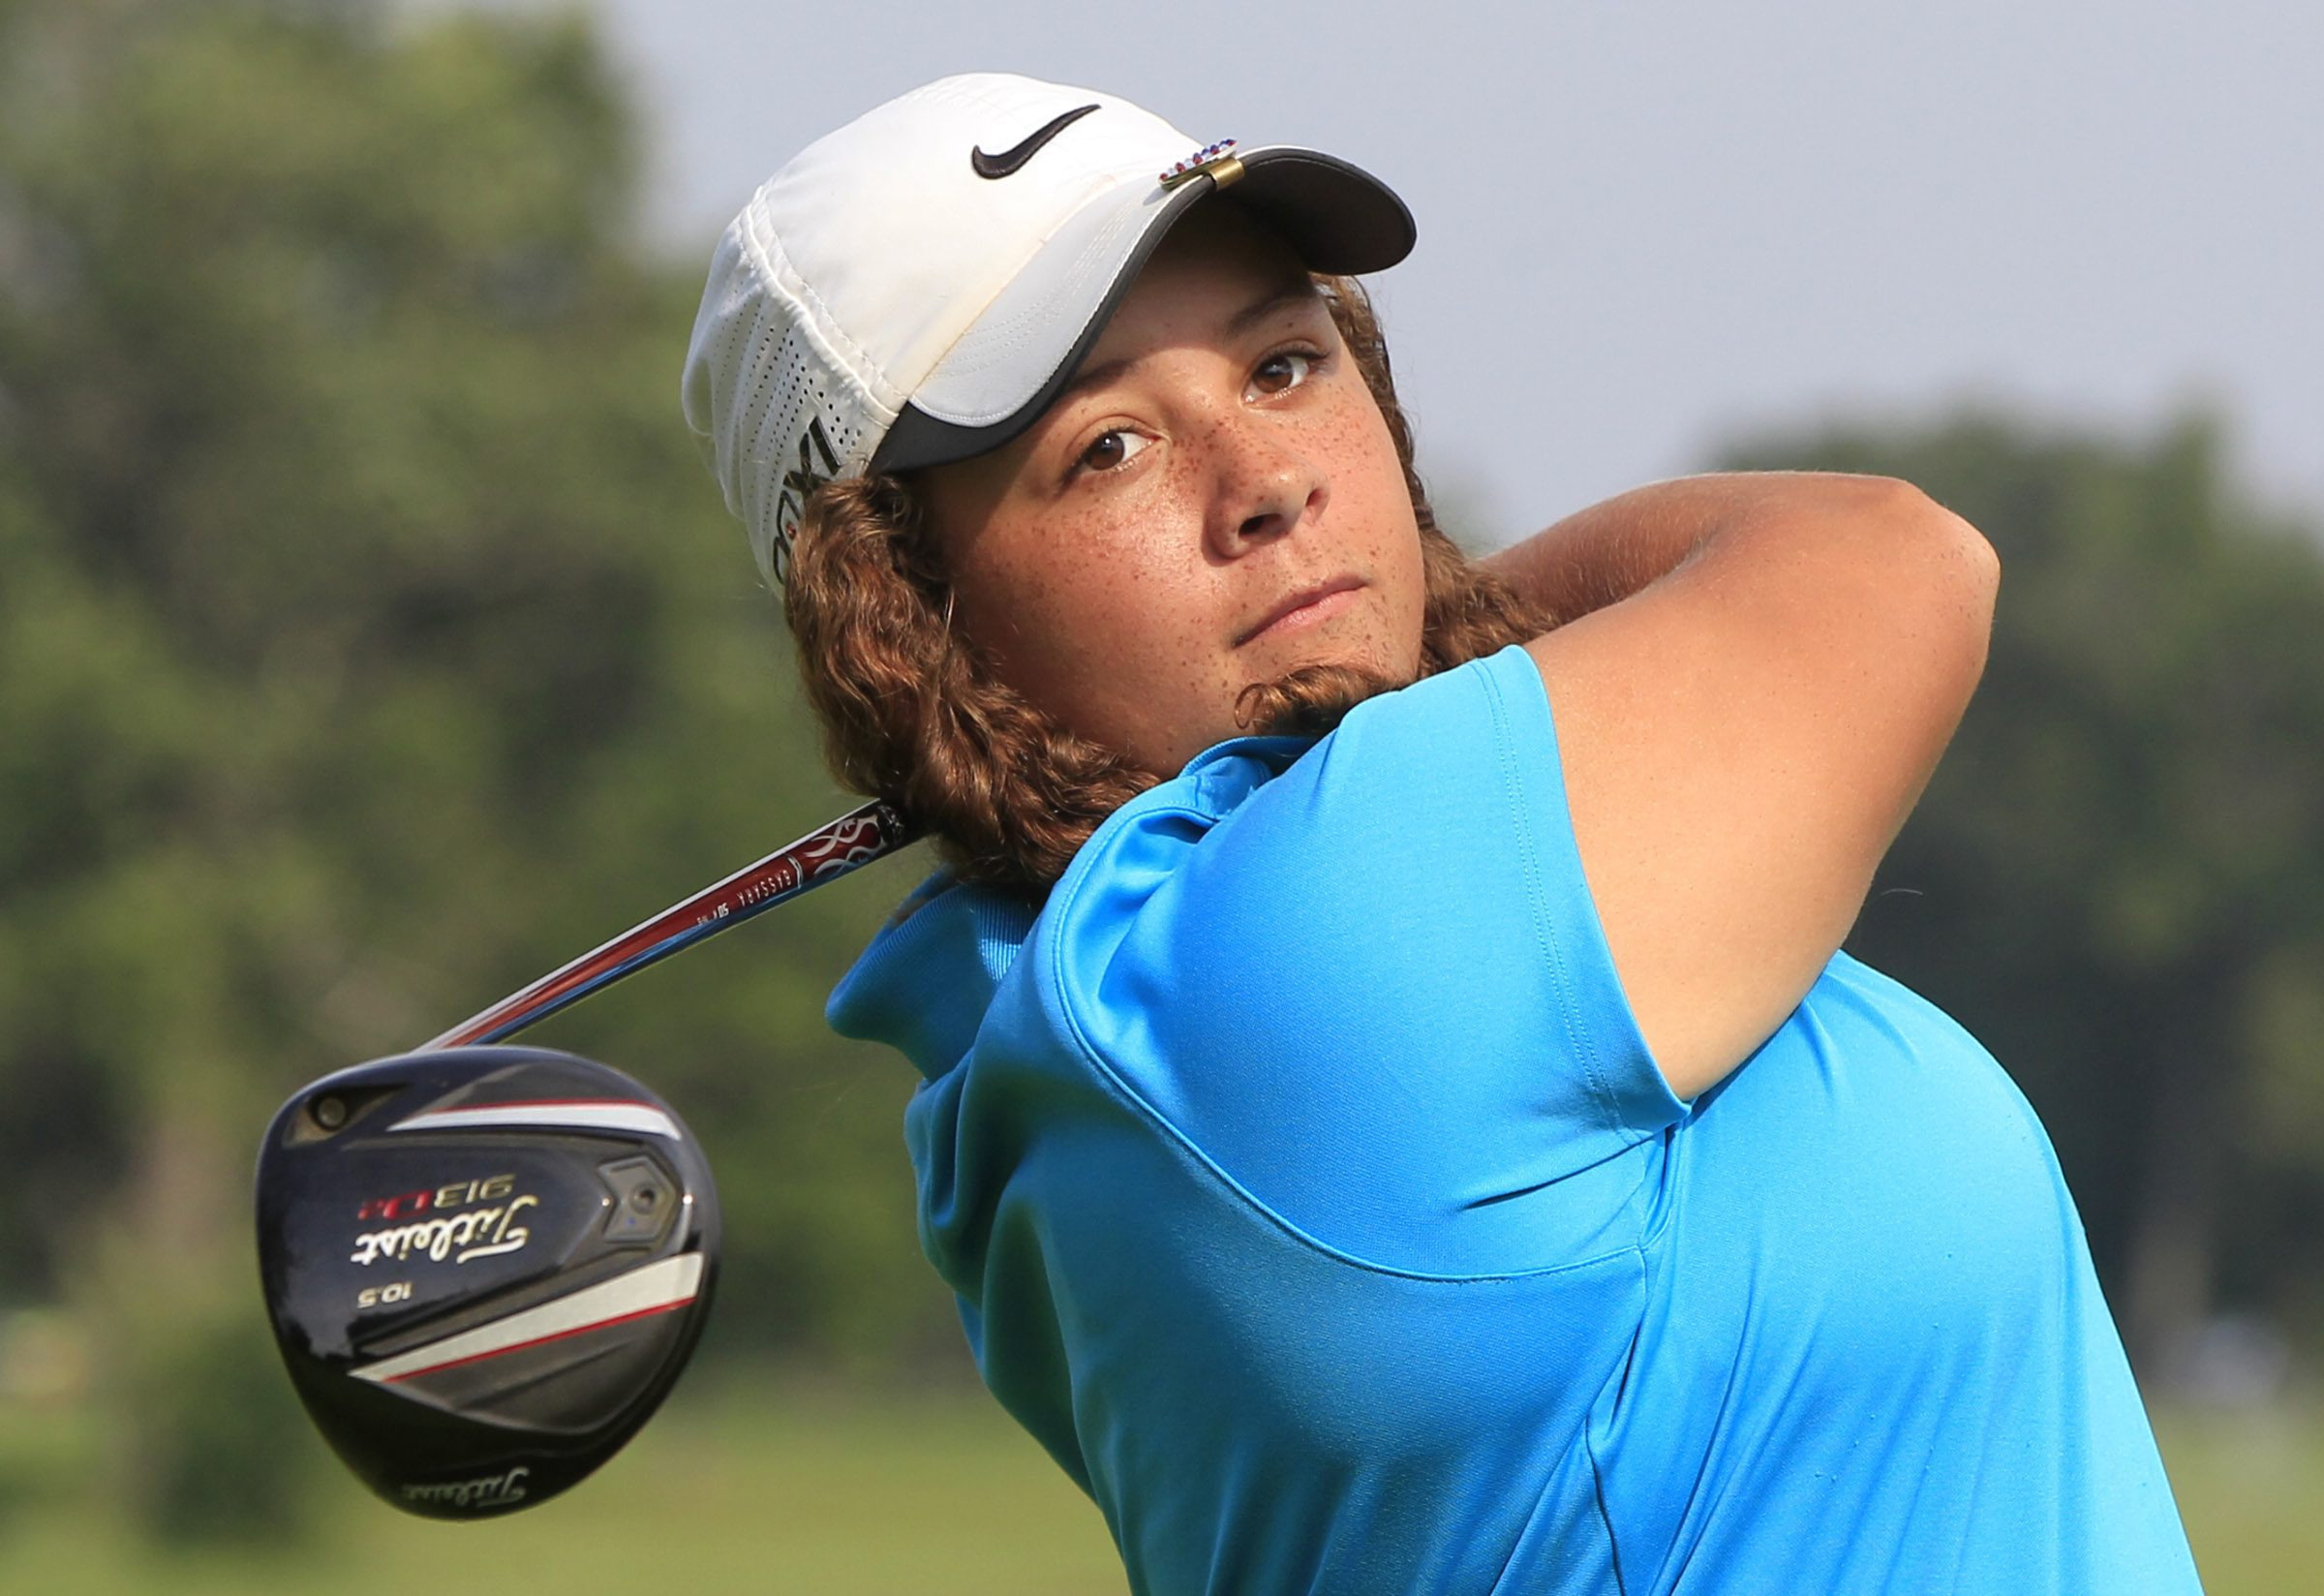 Sarah Godfrey-Singleton will be at the New York State tournament this weekend and competed in last week's Women's Porter Cup.